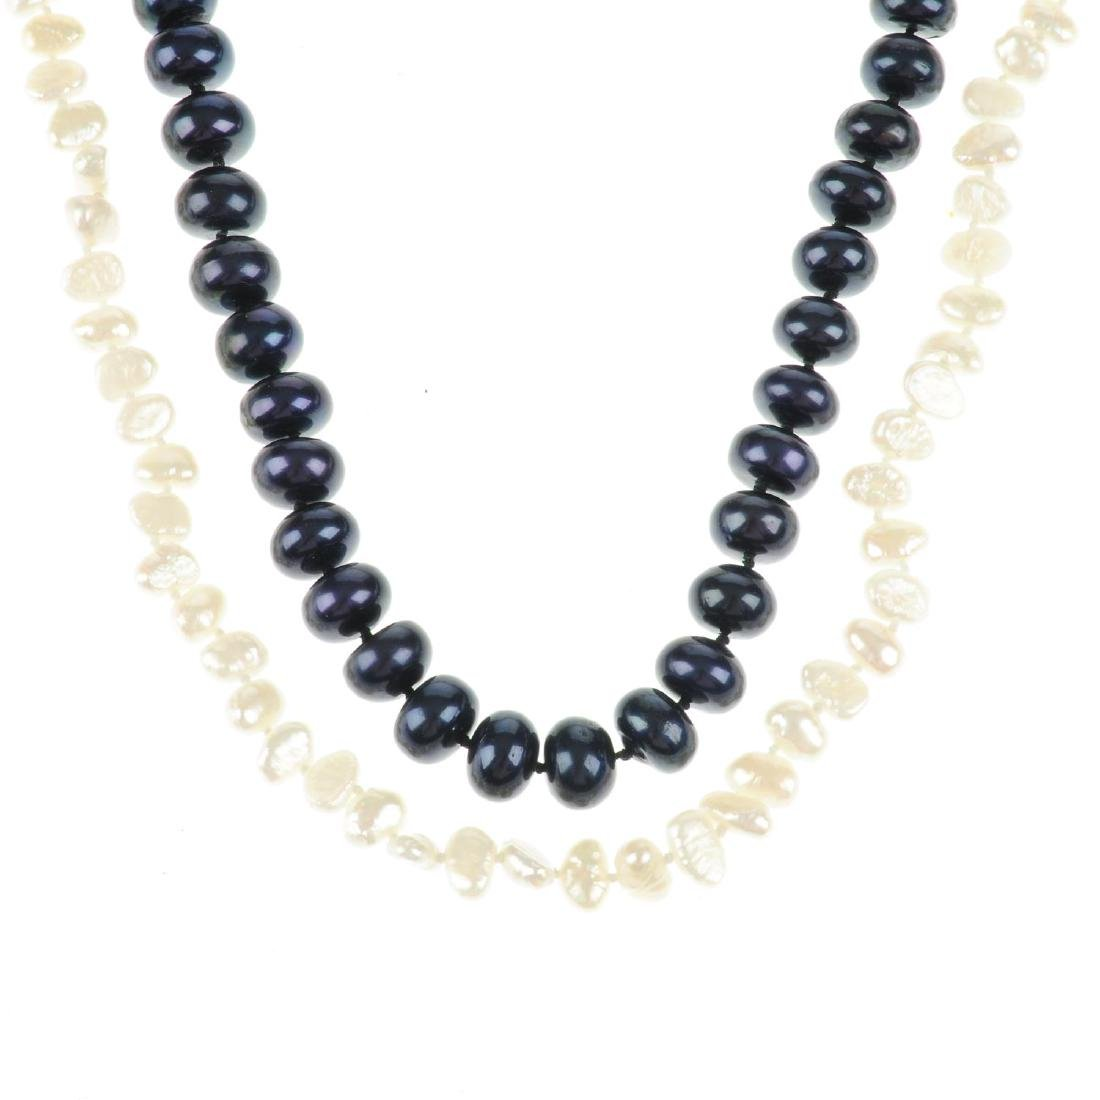 Two freshwater cultured pearl necklaces. The first a